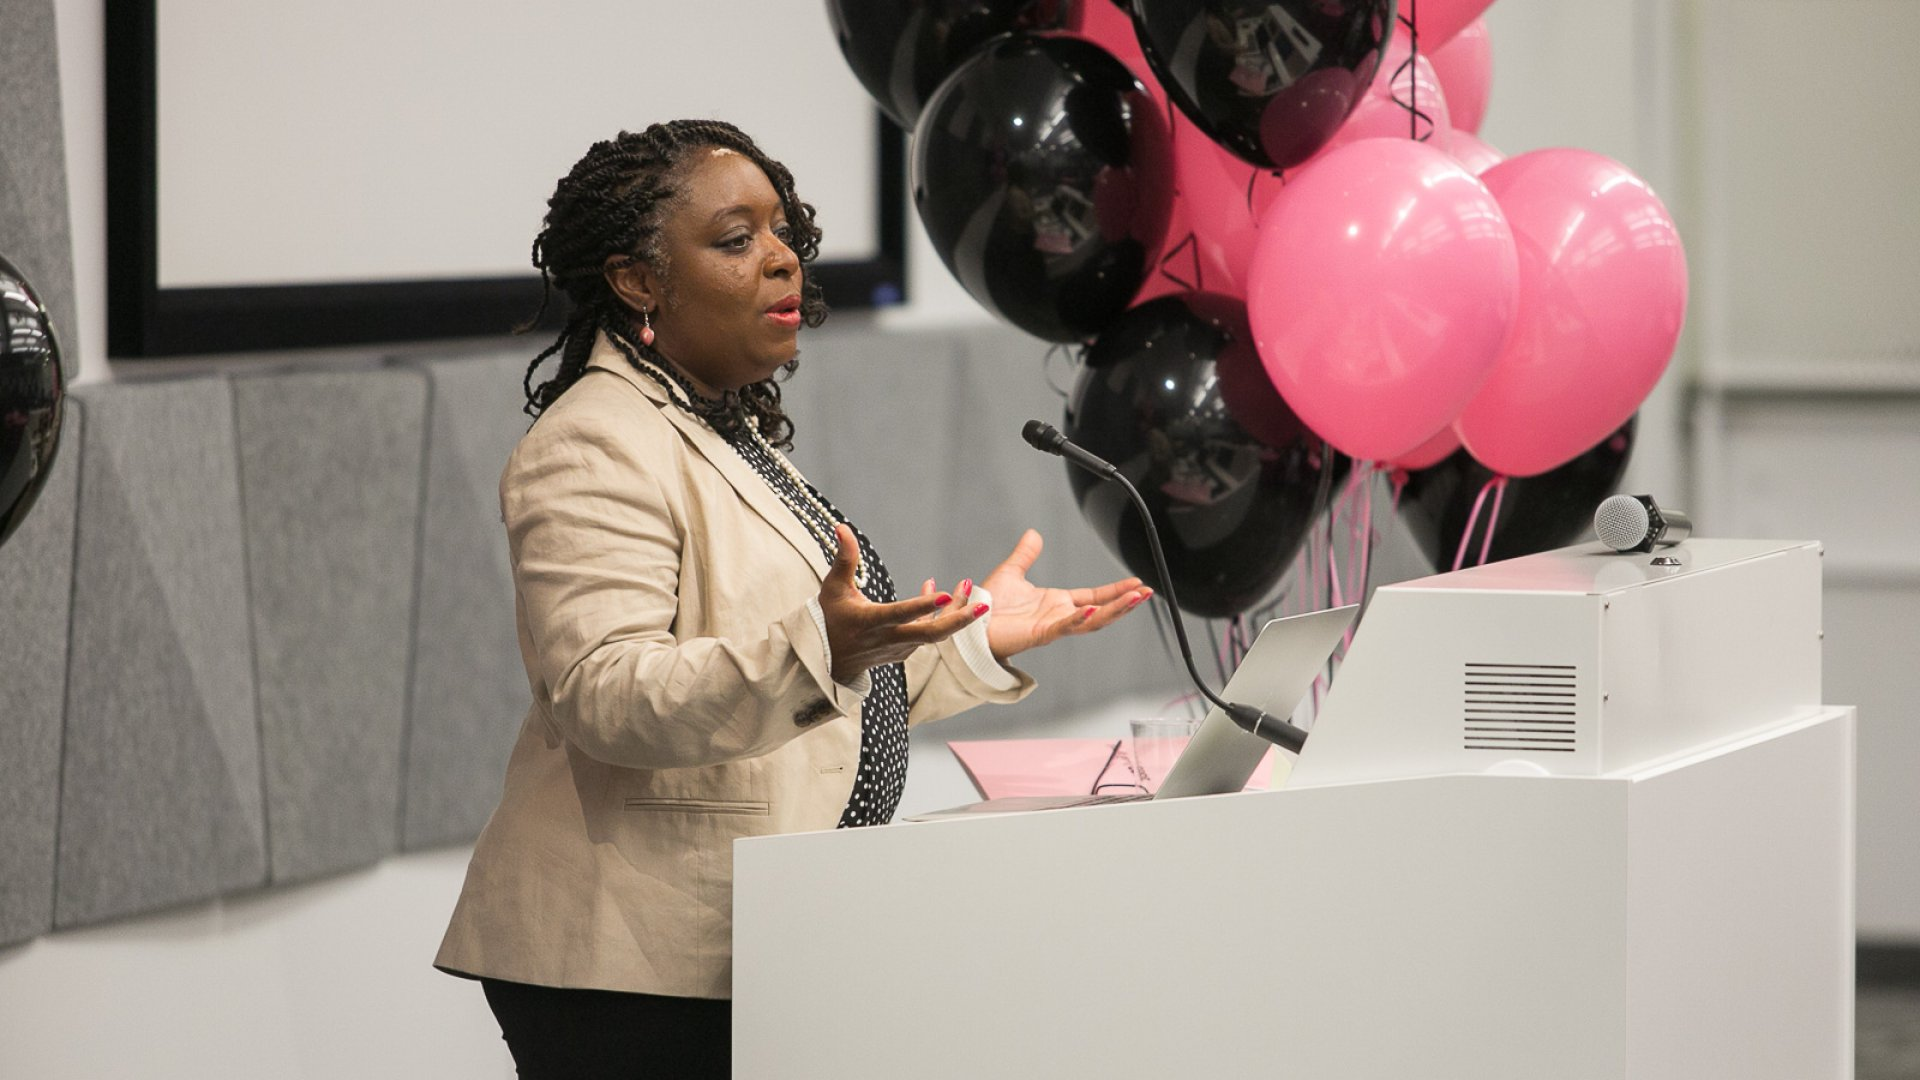 Kimberly Bryant is the founder and CEO of Black Girls Code, a nonprofit that teaches computer programming to African-American girls.